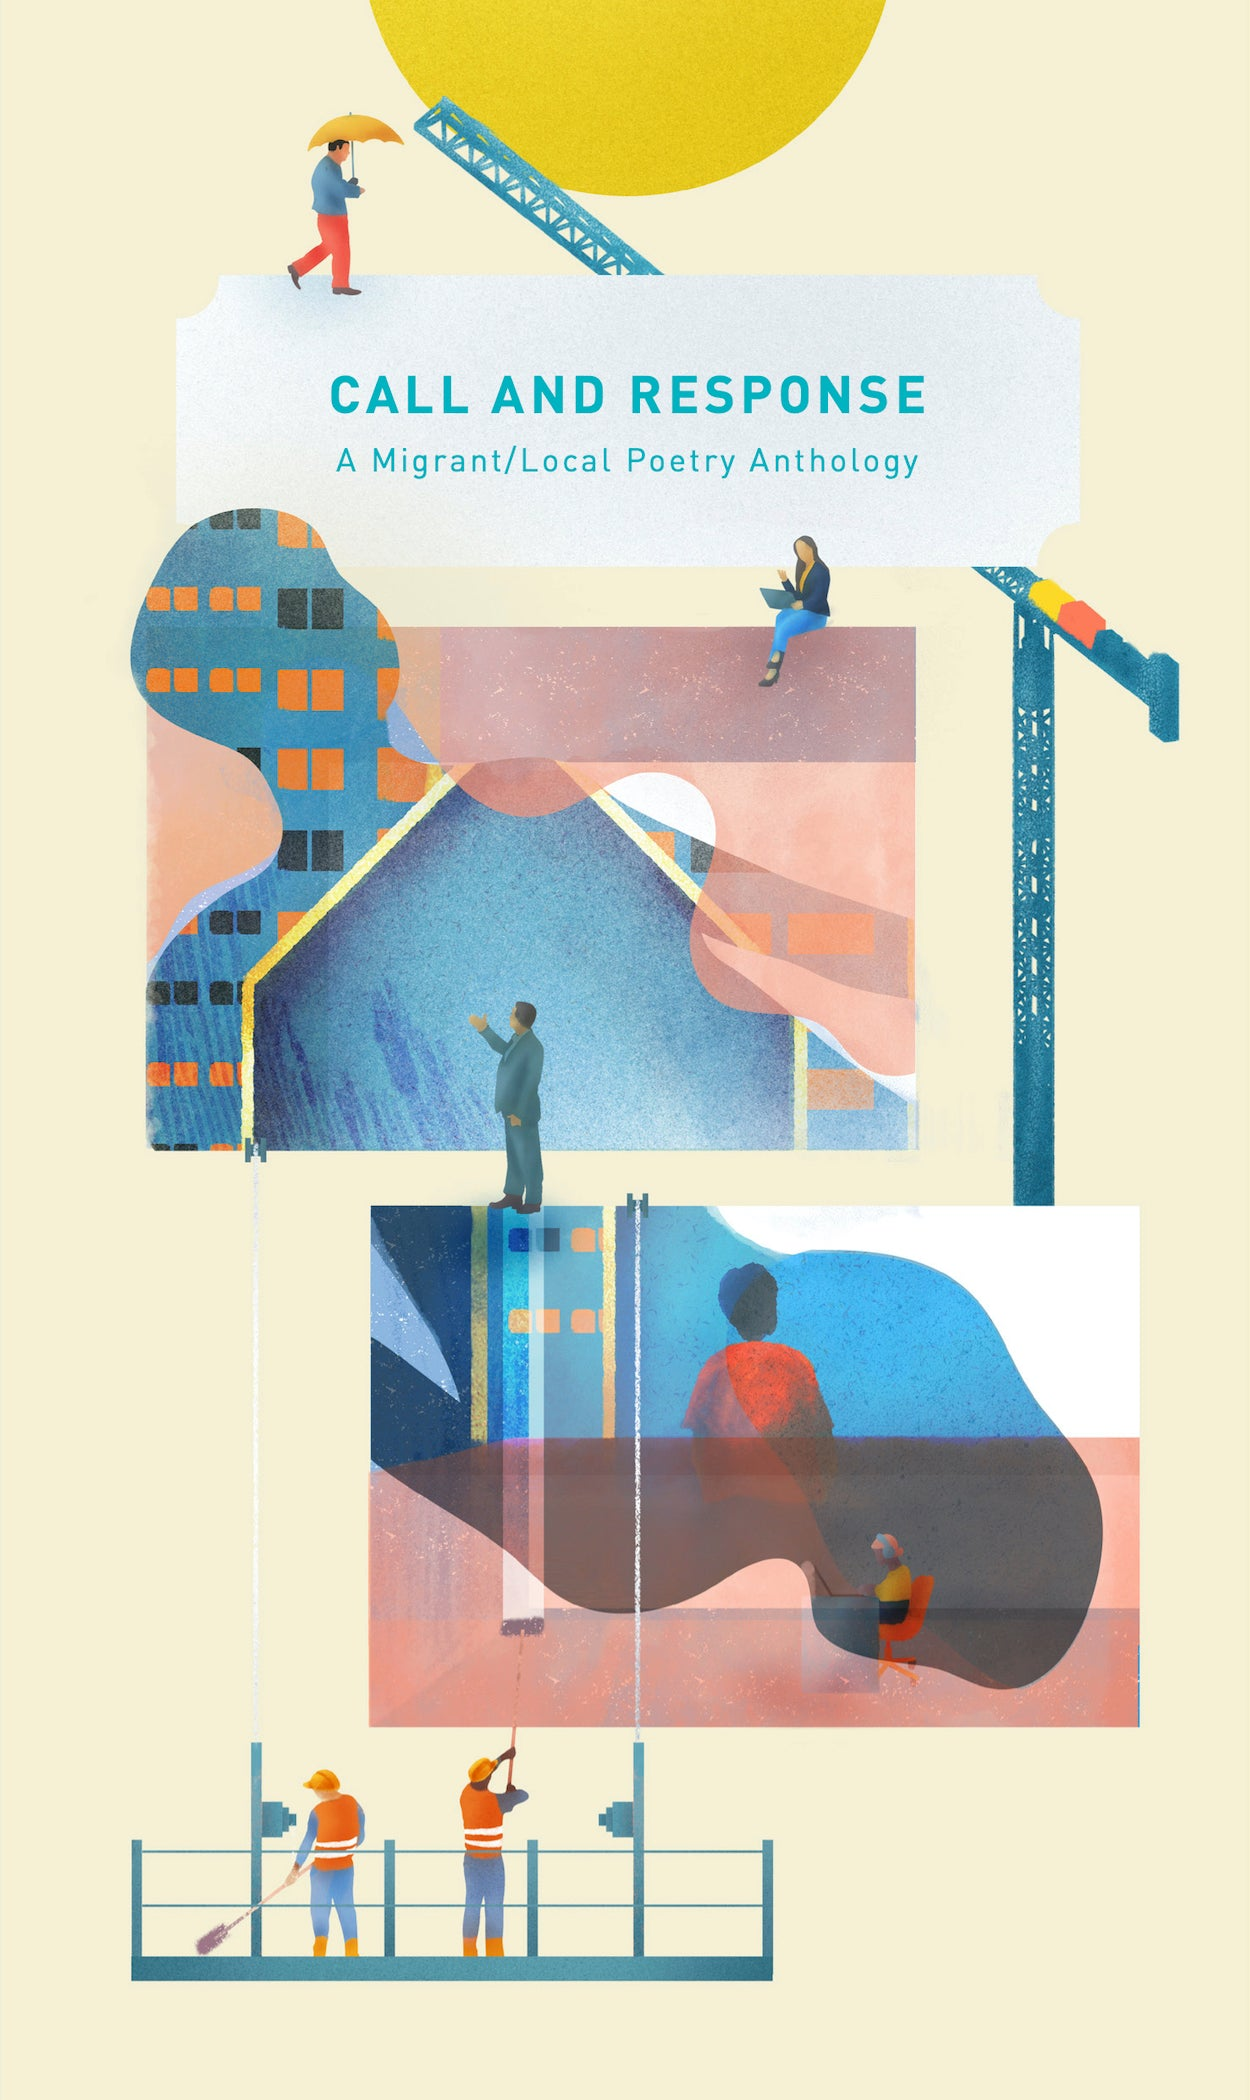 Call And Response: A Migrant/Local Poetry Anthology